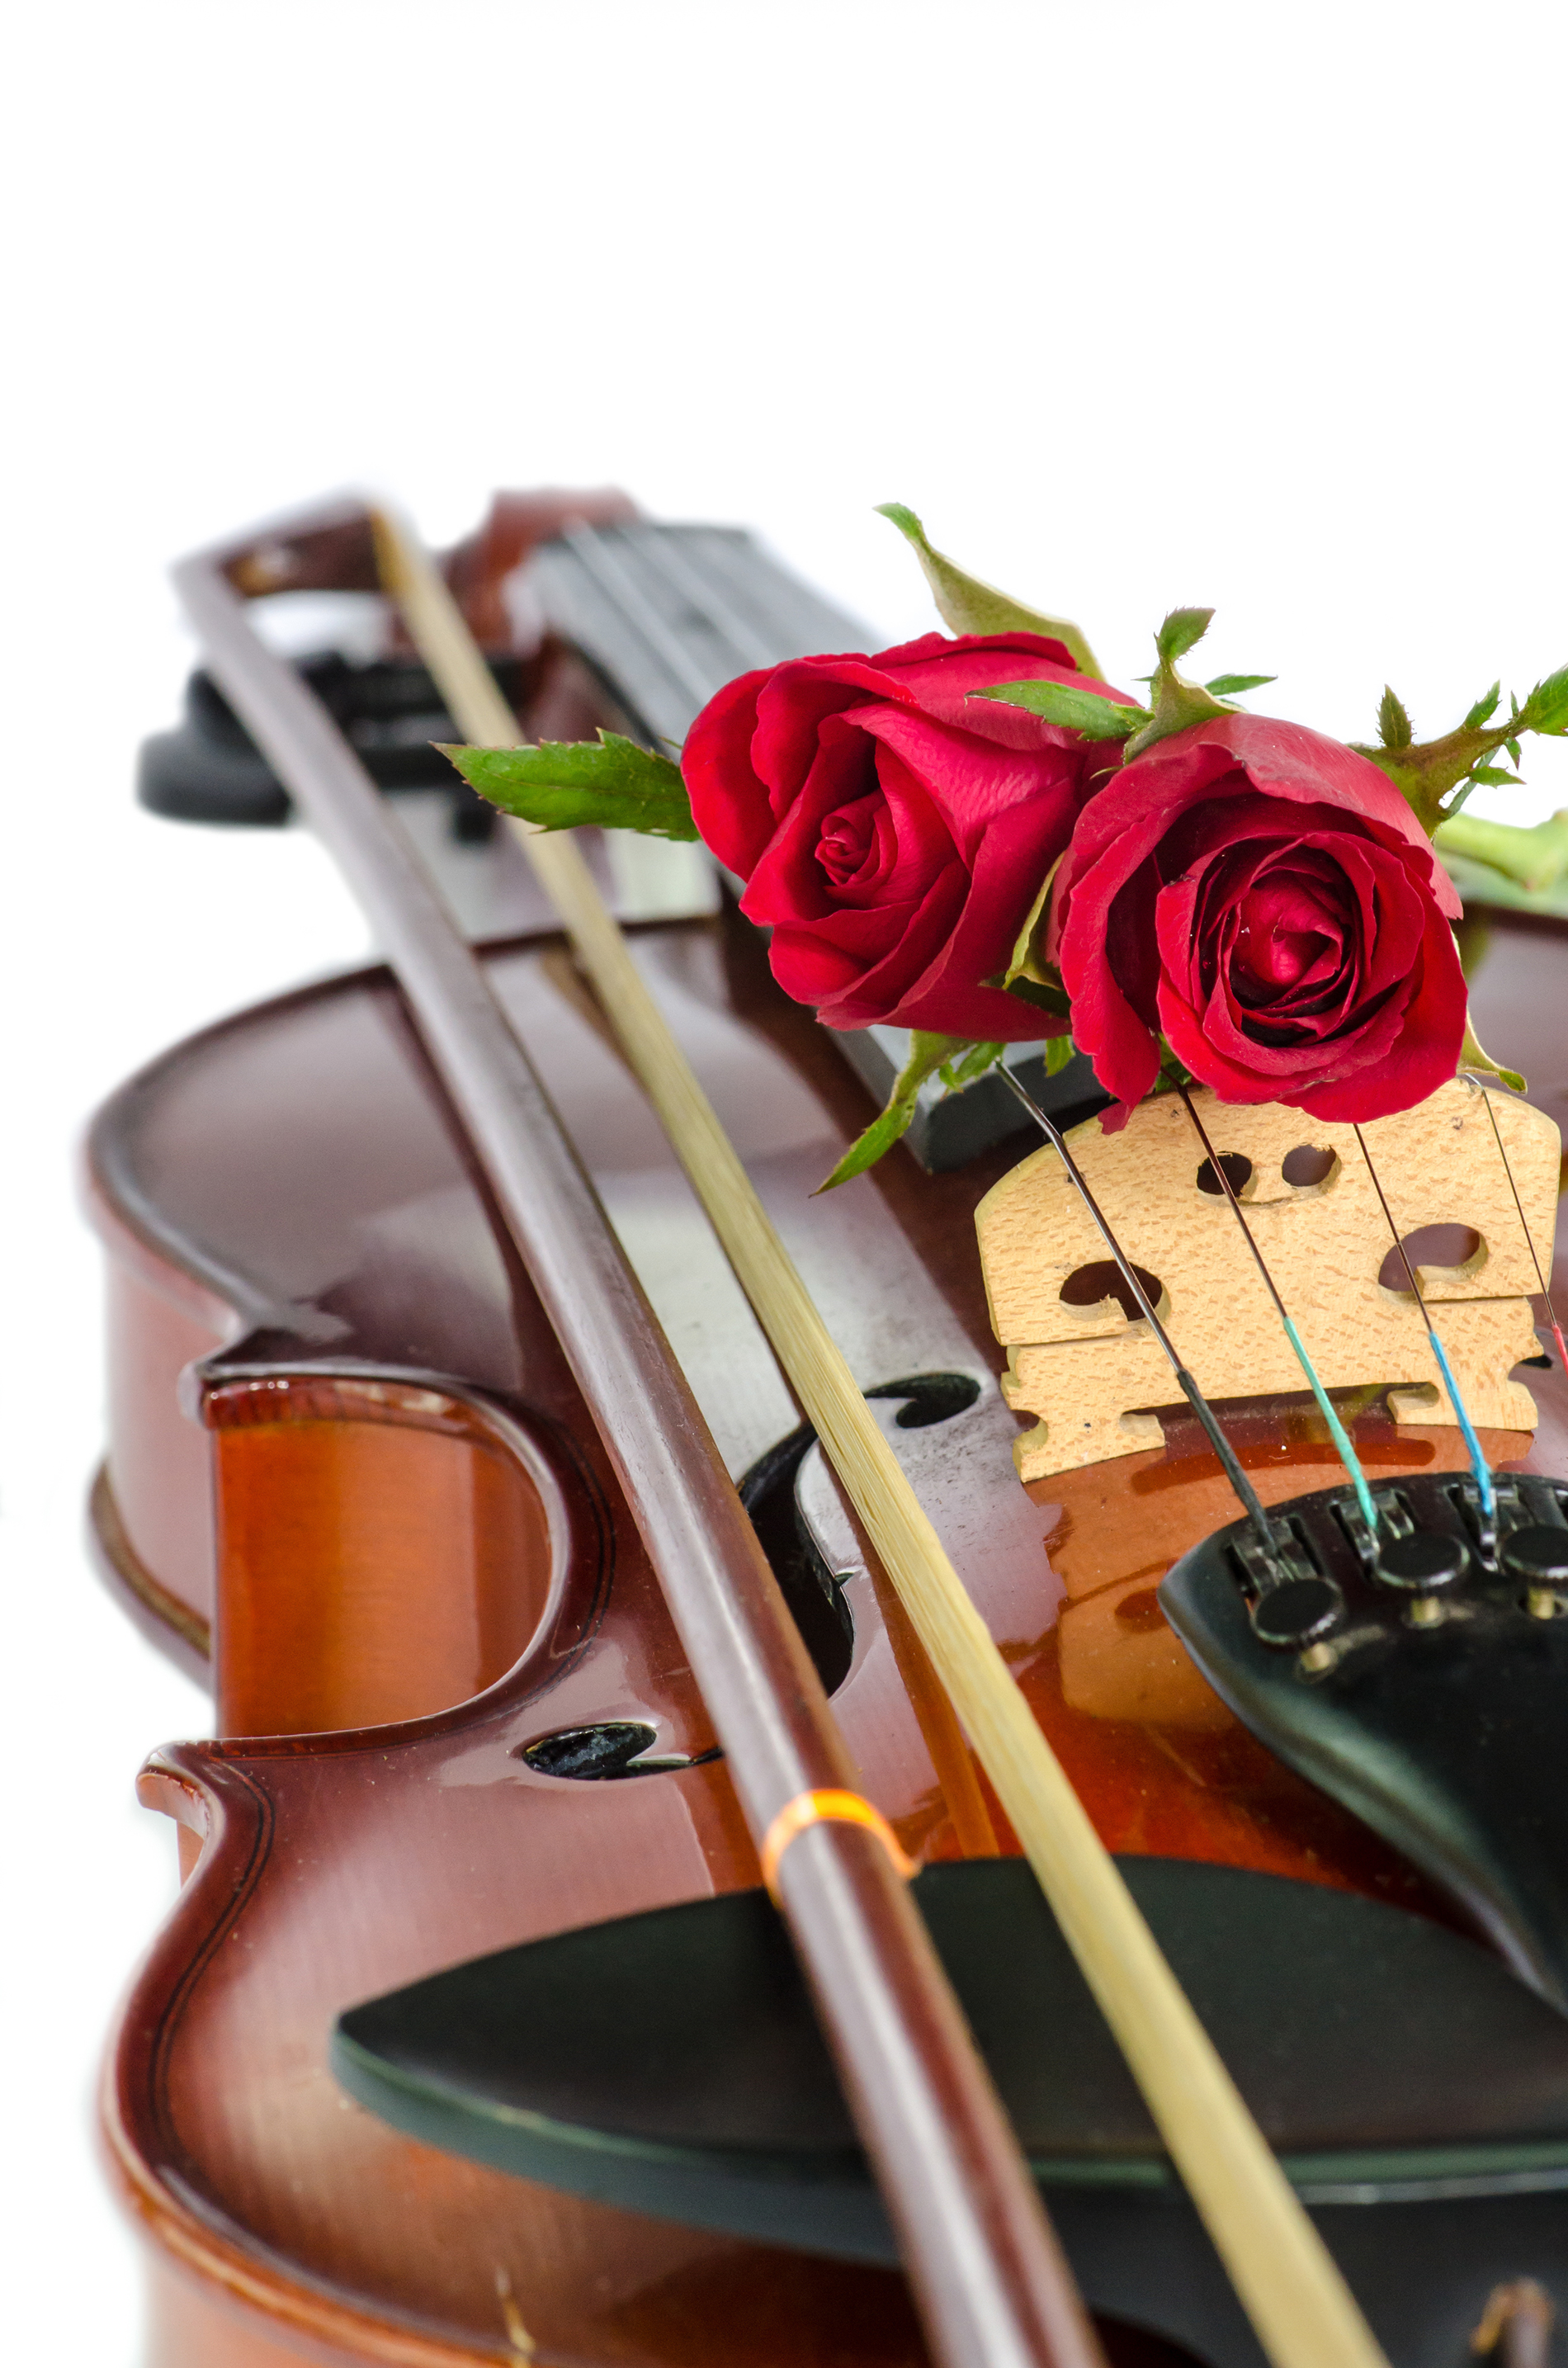 Placed in the rose on the violin 52915